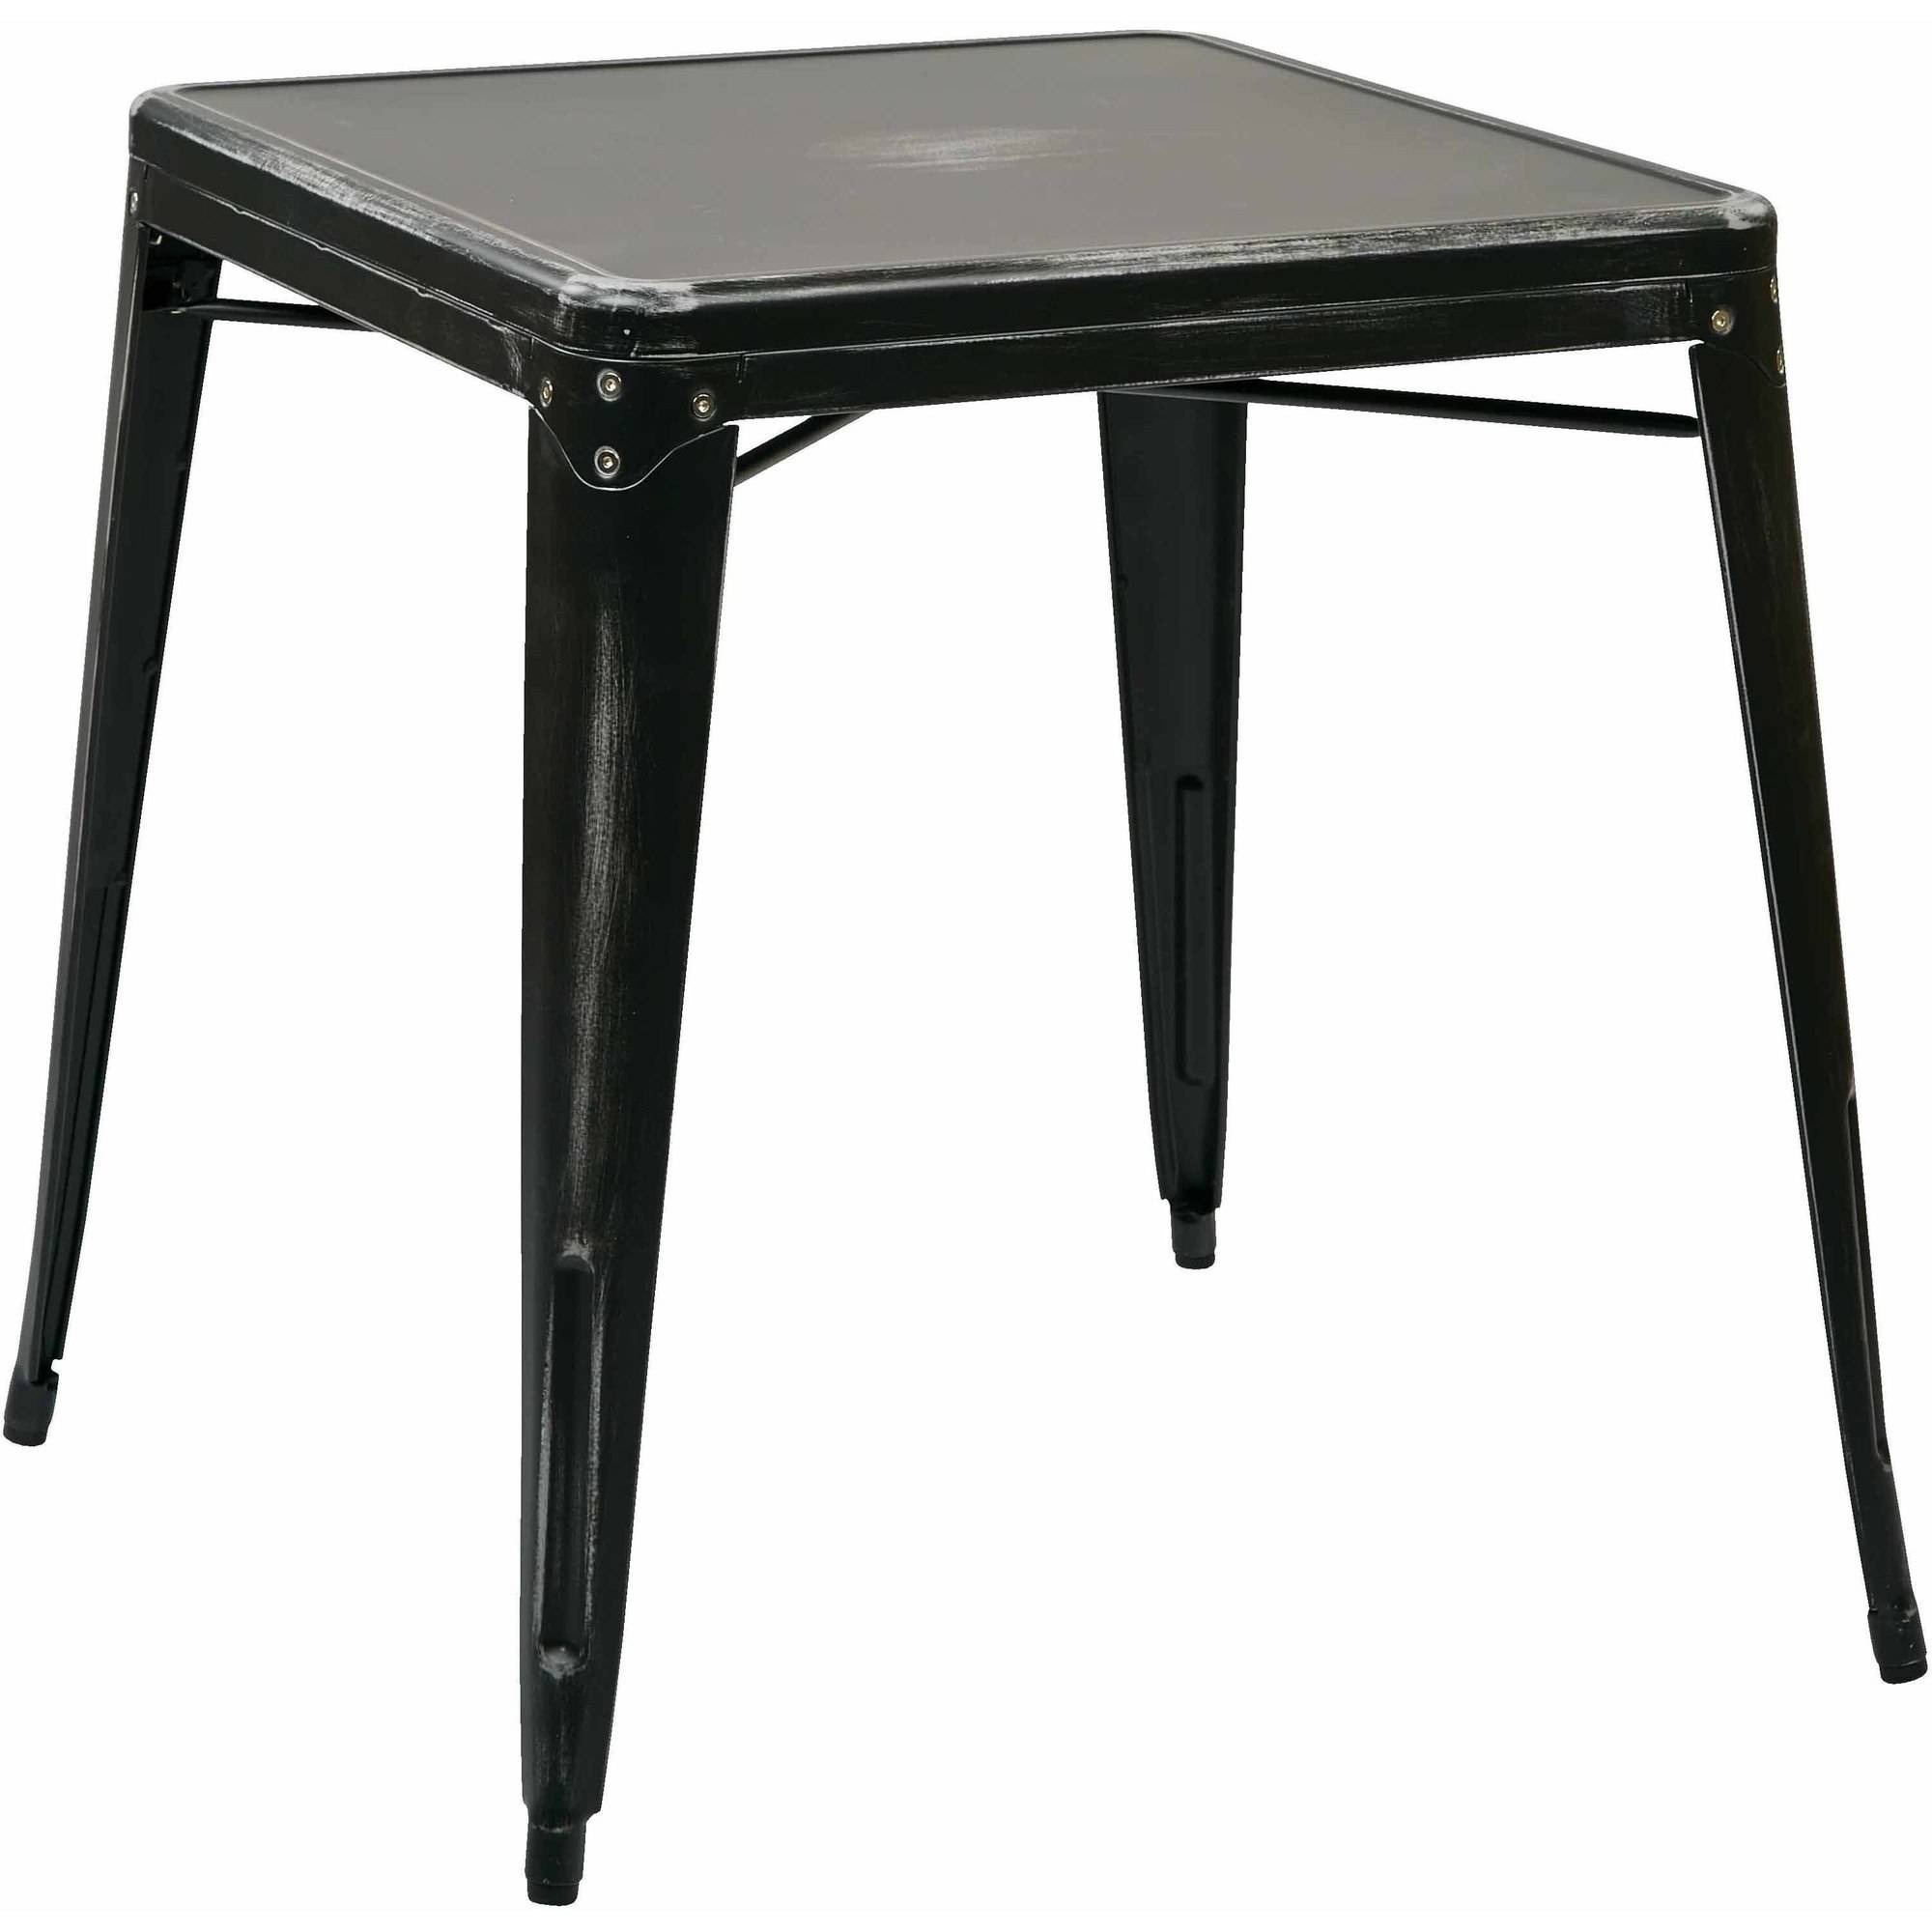 Bristow Antique Metal Table